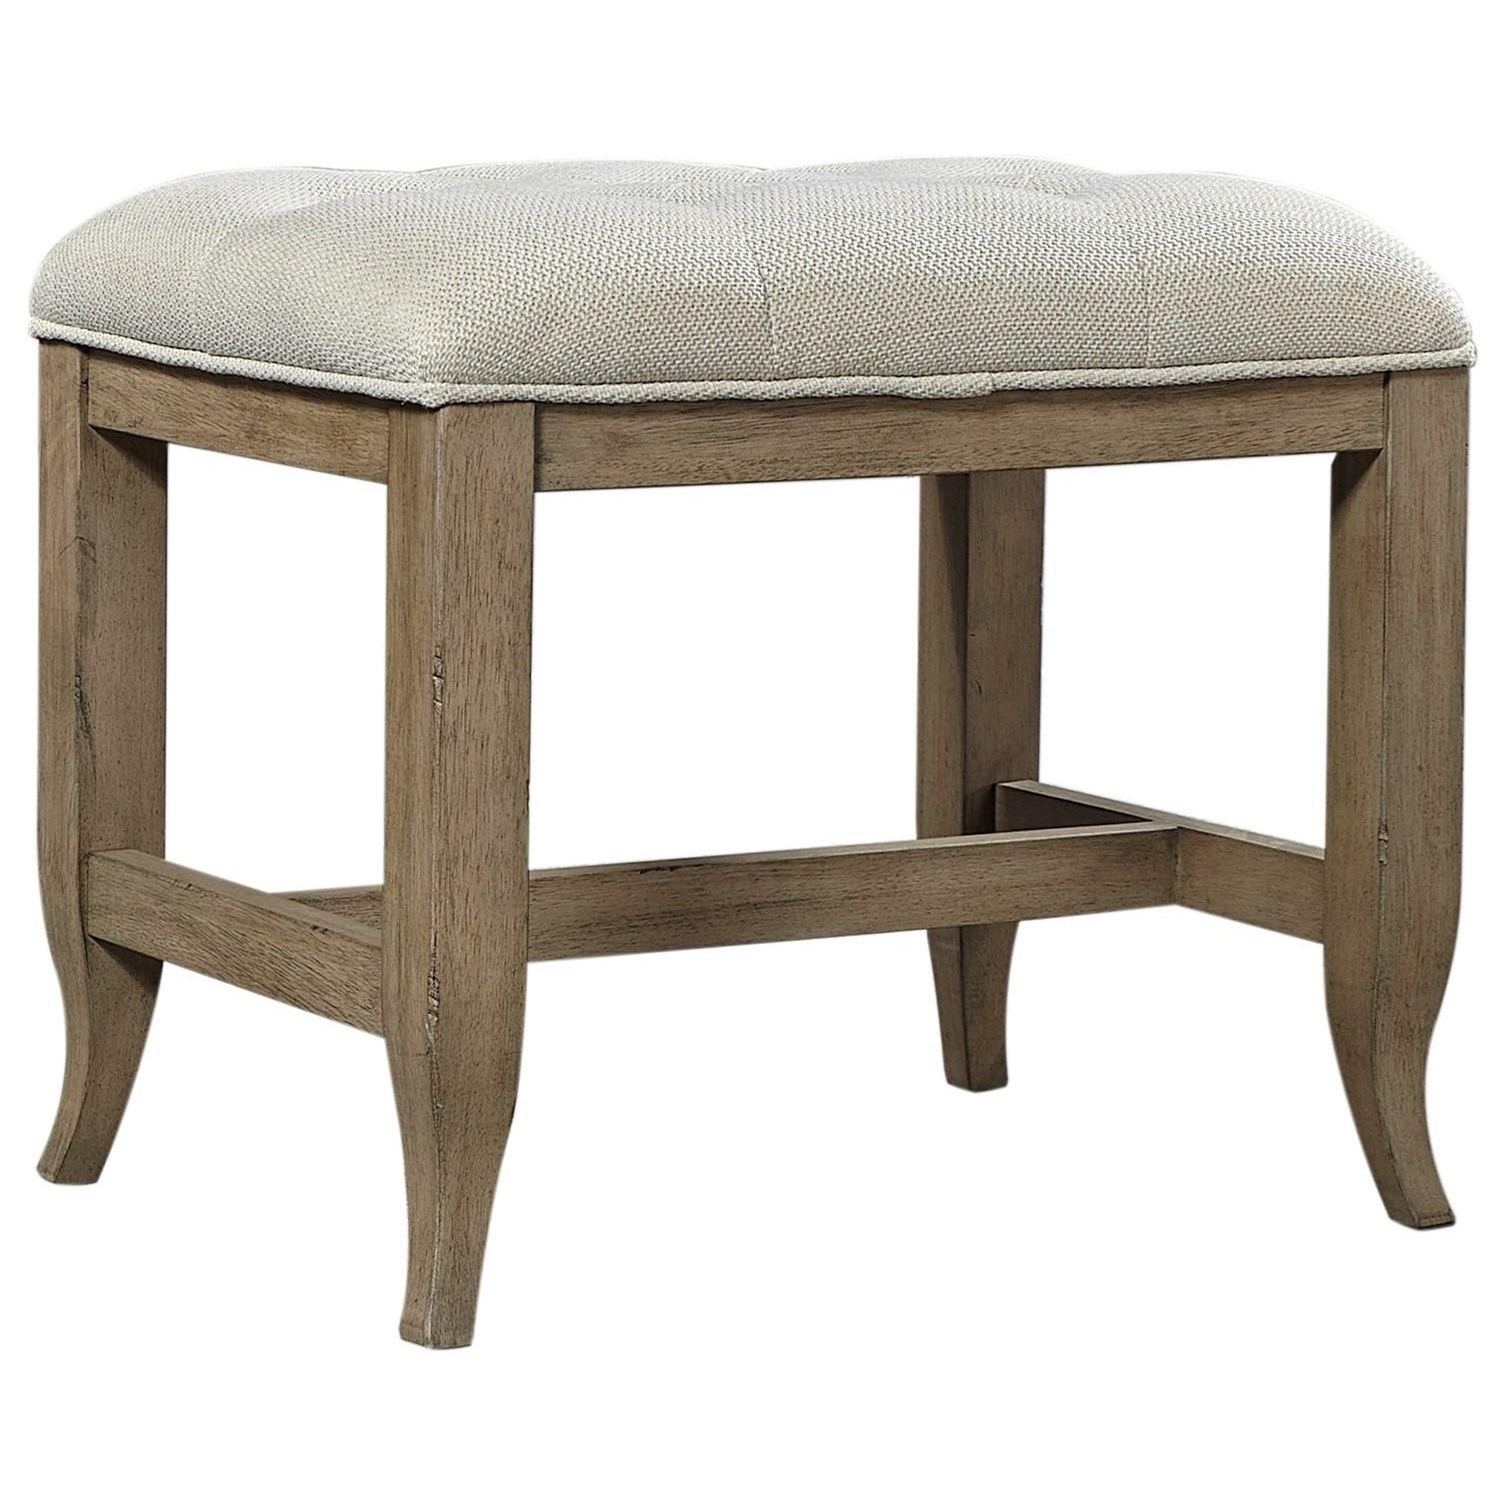 Provence Bench  by Aspenhome at Walker's Furniture